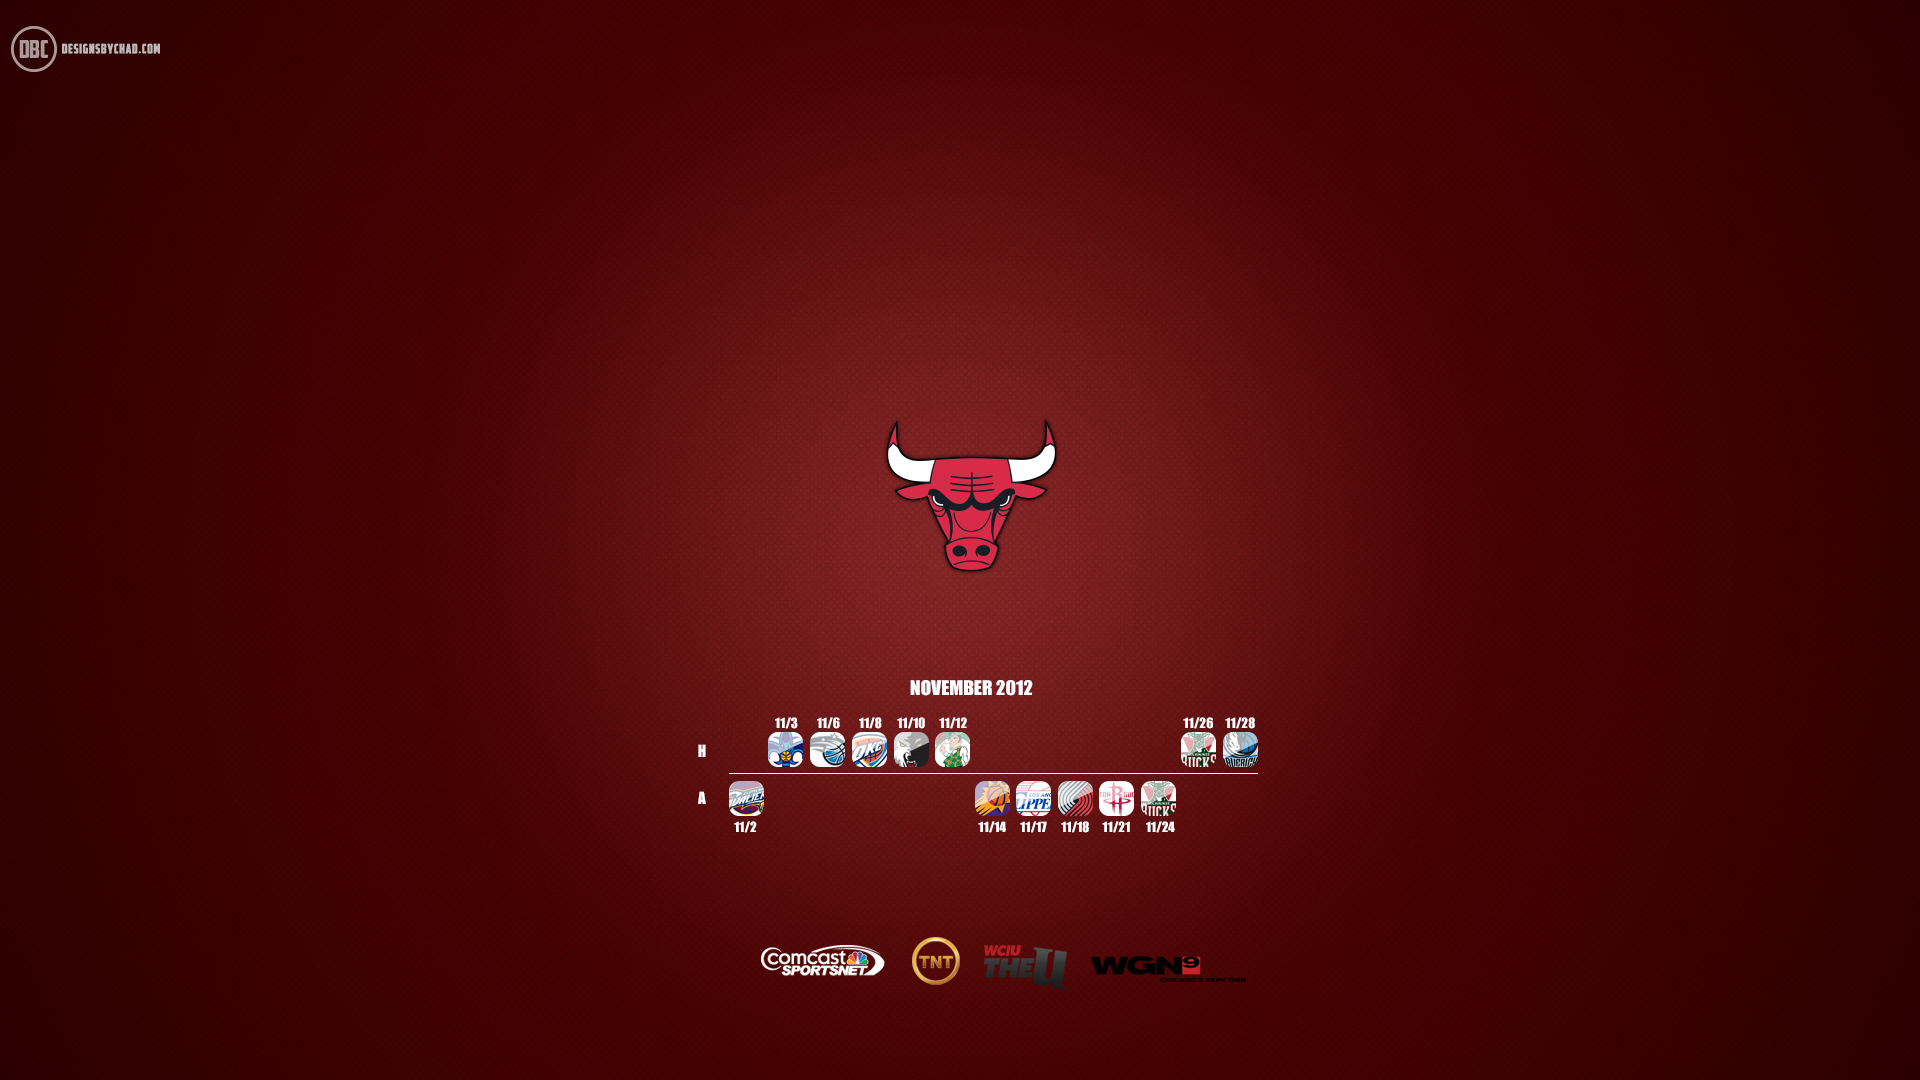 Chicago bulls wallpaper windy city wallpapersafari chicago bulls wallpaper windy city chicago bulls wallpaper windy voltagebd Images